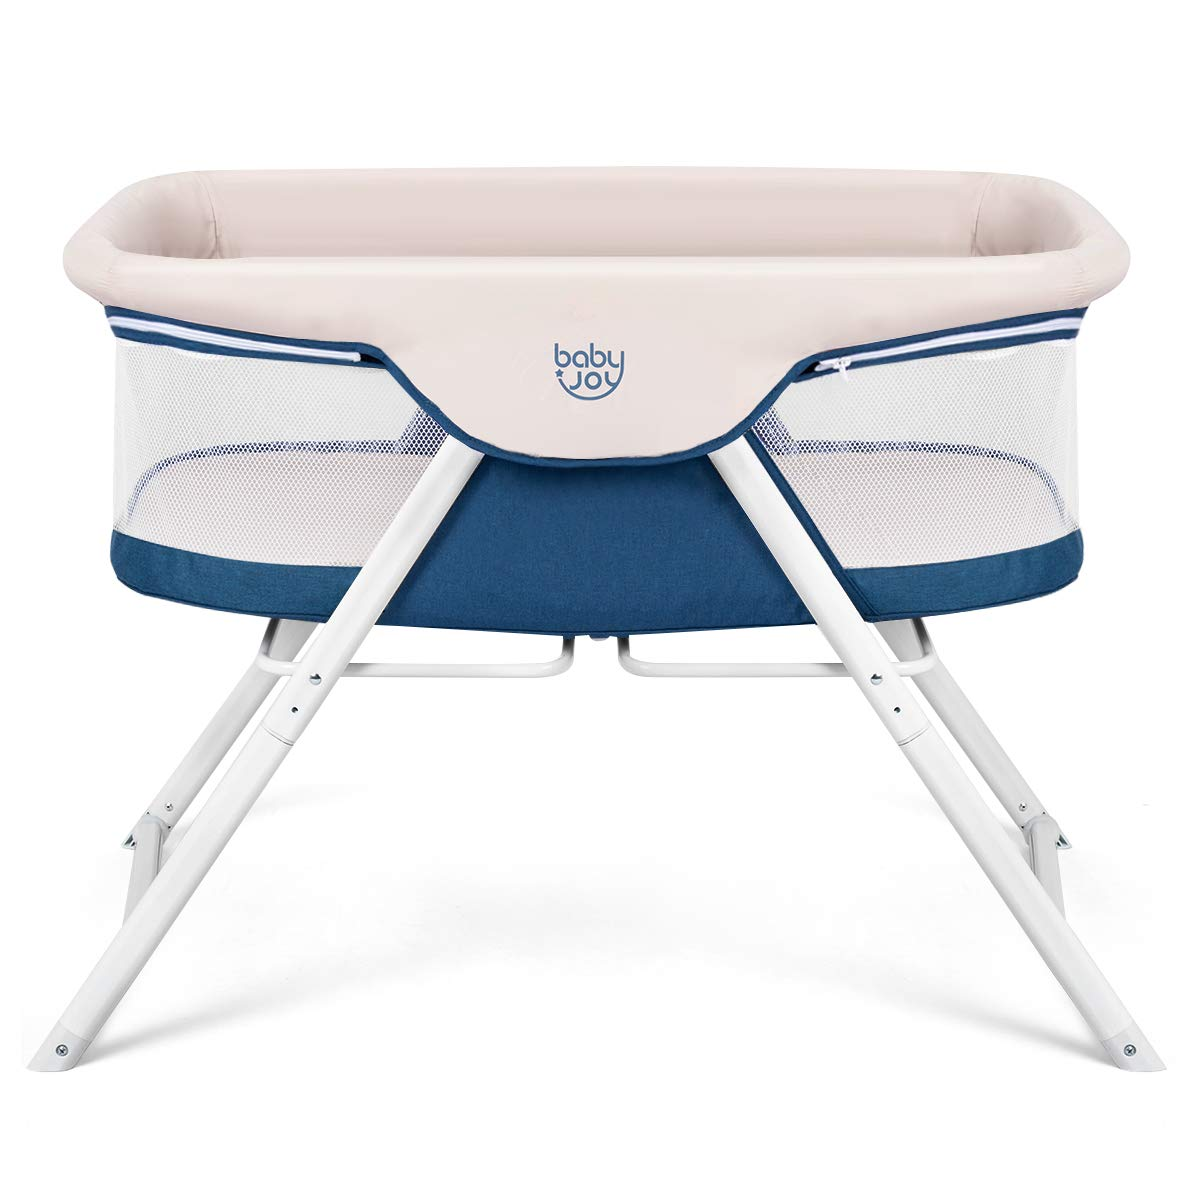 BABY JOY Rocking Bassinet, 2 in 1 Lightweight Travel Cradle w/Detachable & Washable Mattress, Zippered Breathable Mesh Side, Oxford Carry Bag Included, Portable Crib for Newborn Baby (Beige + Blue) by BABY JOY